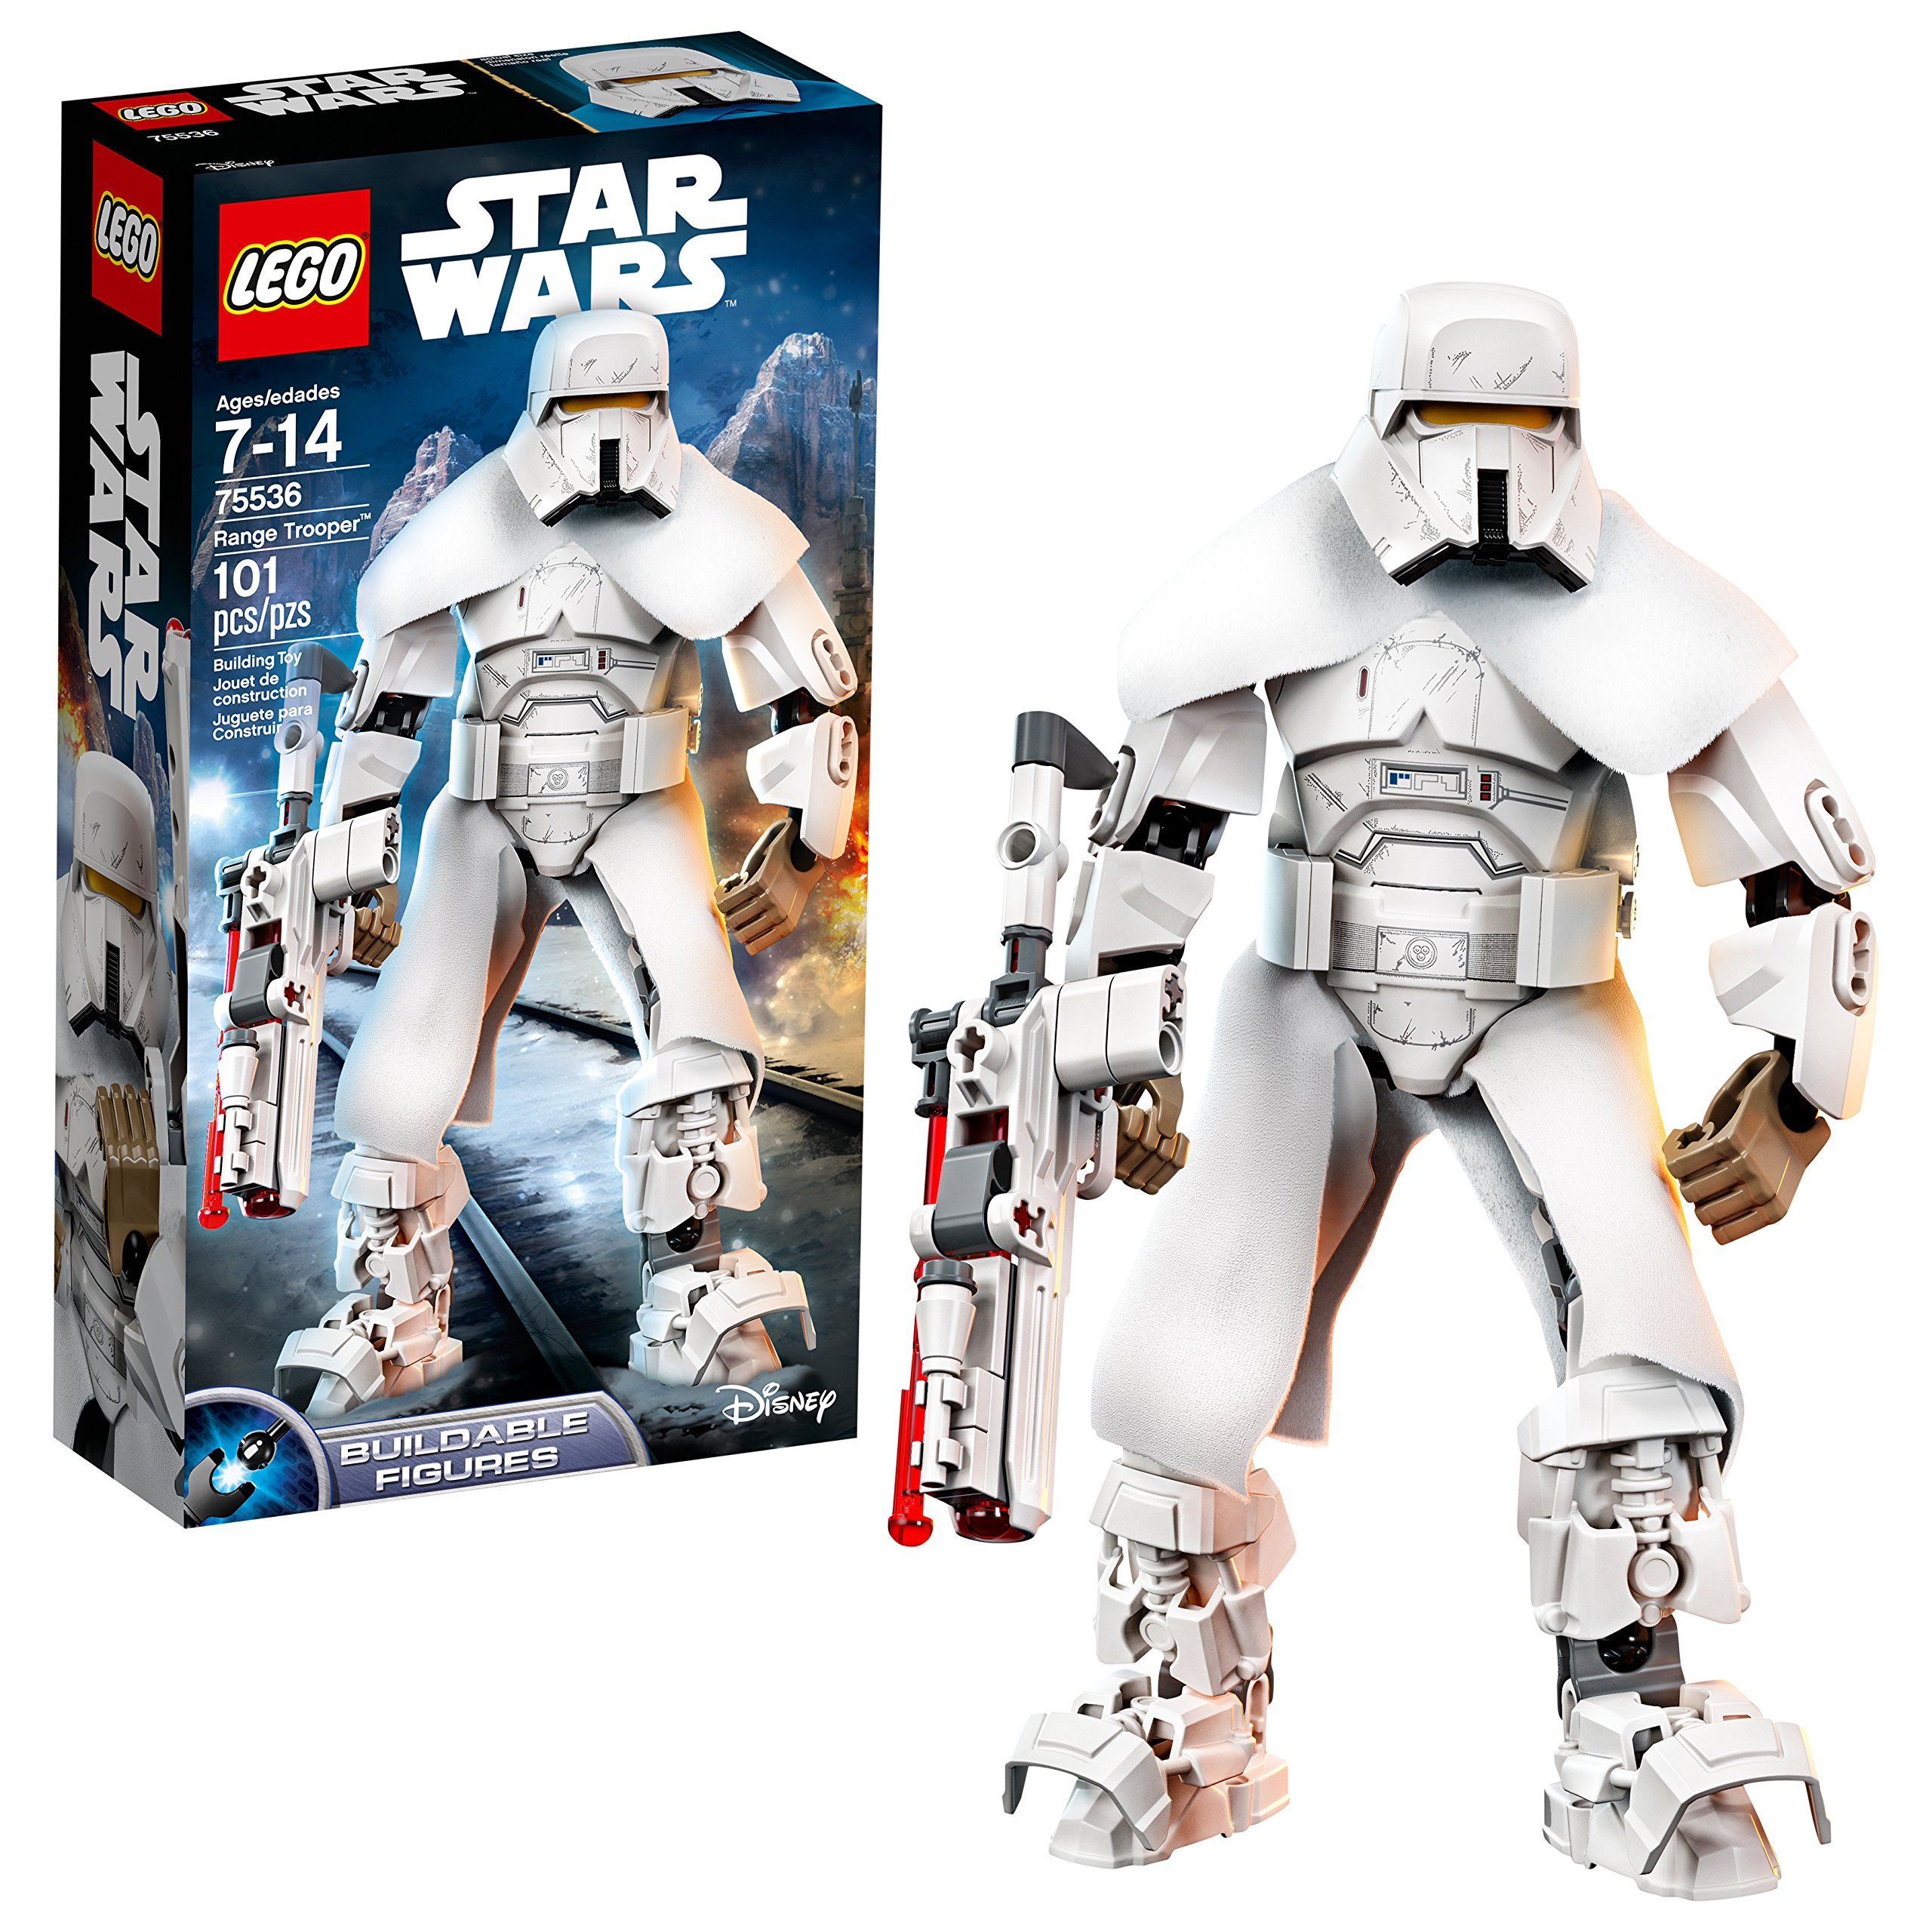 Buy Range Trooper Star Wars Lego Now!